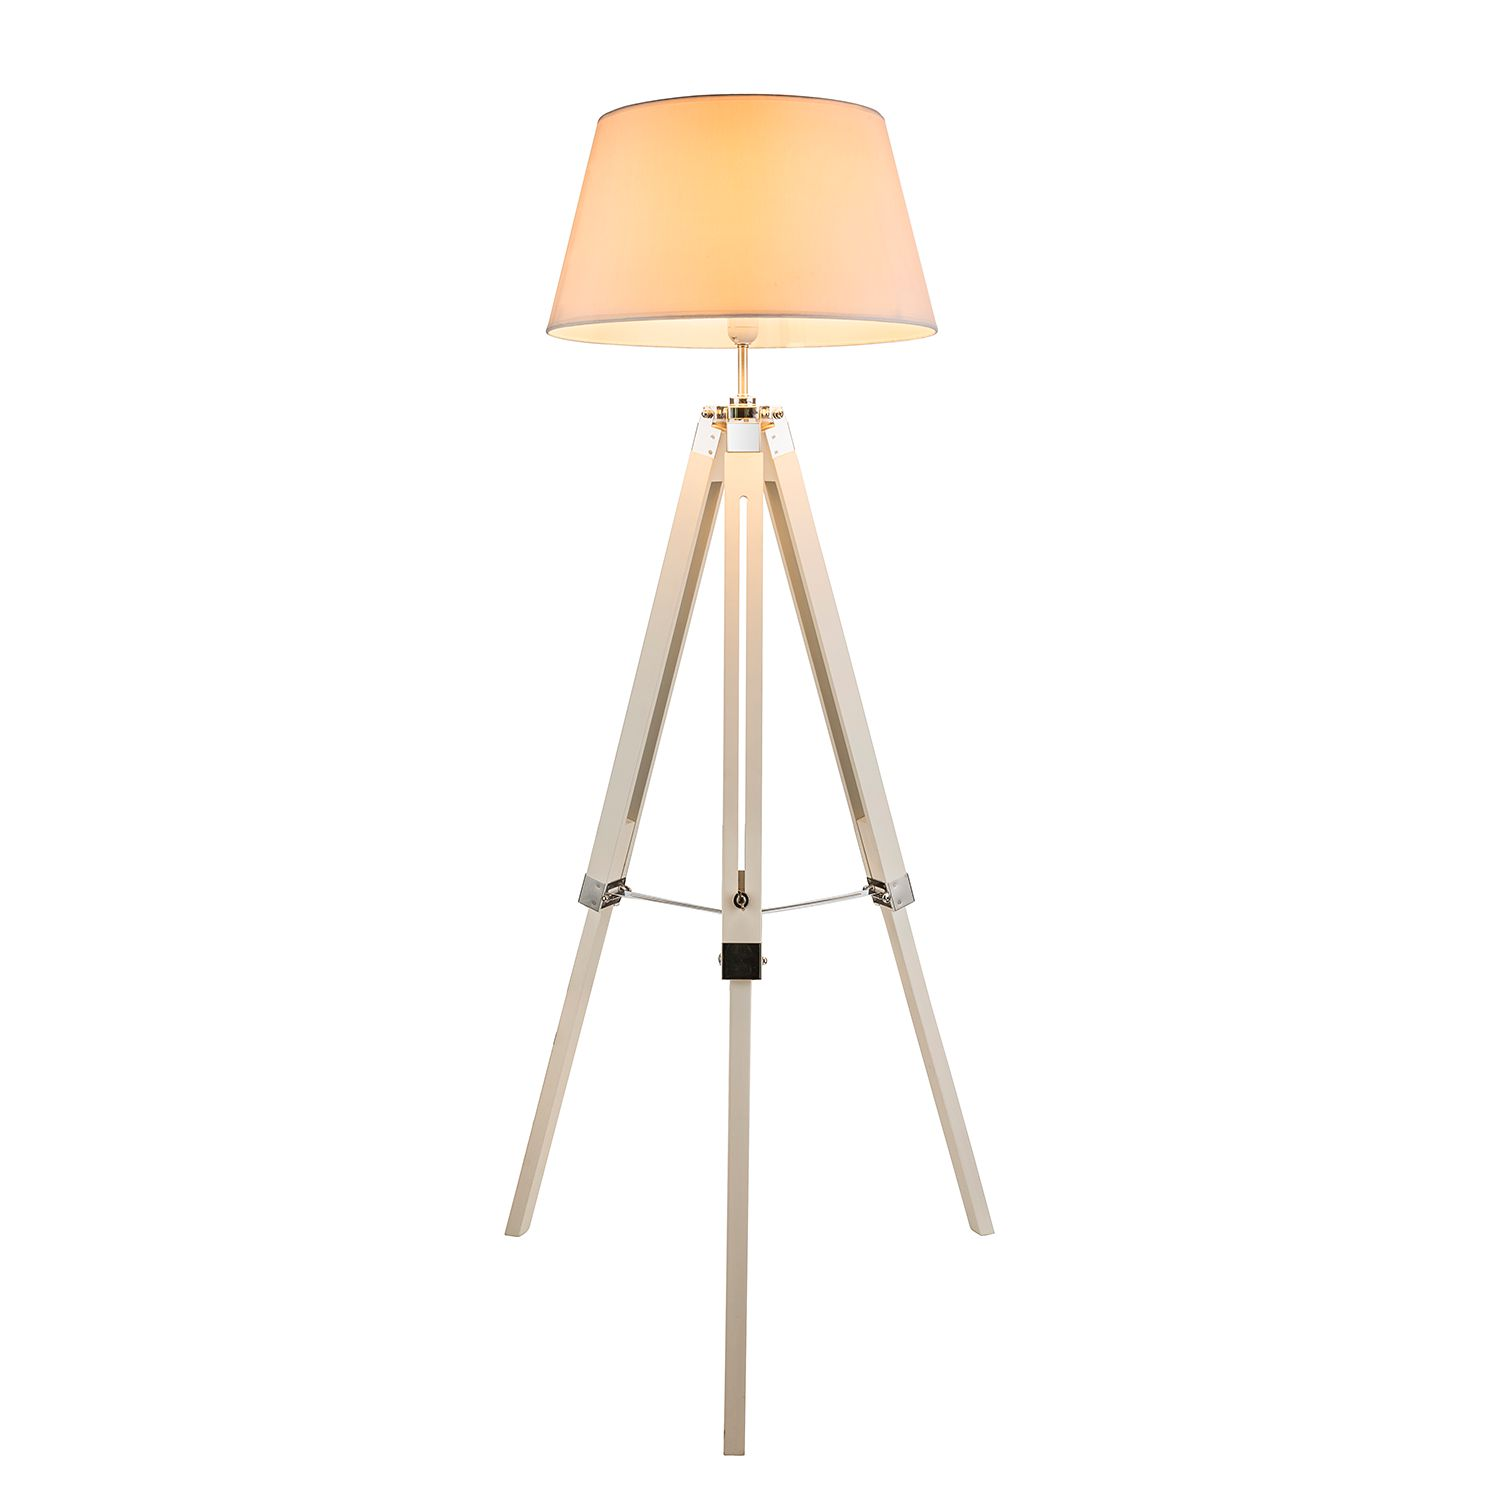 EEK A++, Lampadaire Mareen - Tissu / Pin massif - 1 ampoule - Blanc / Pin, Globo Lighting